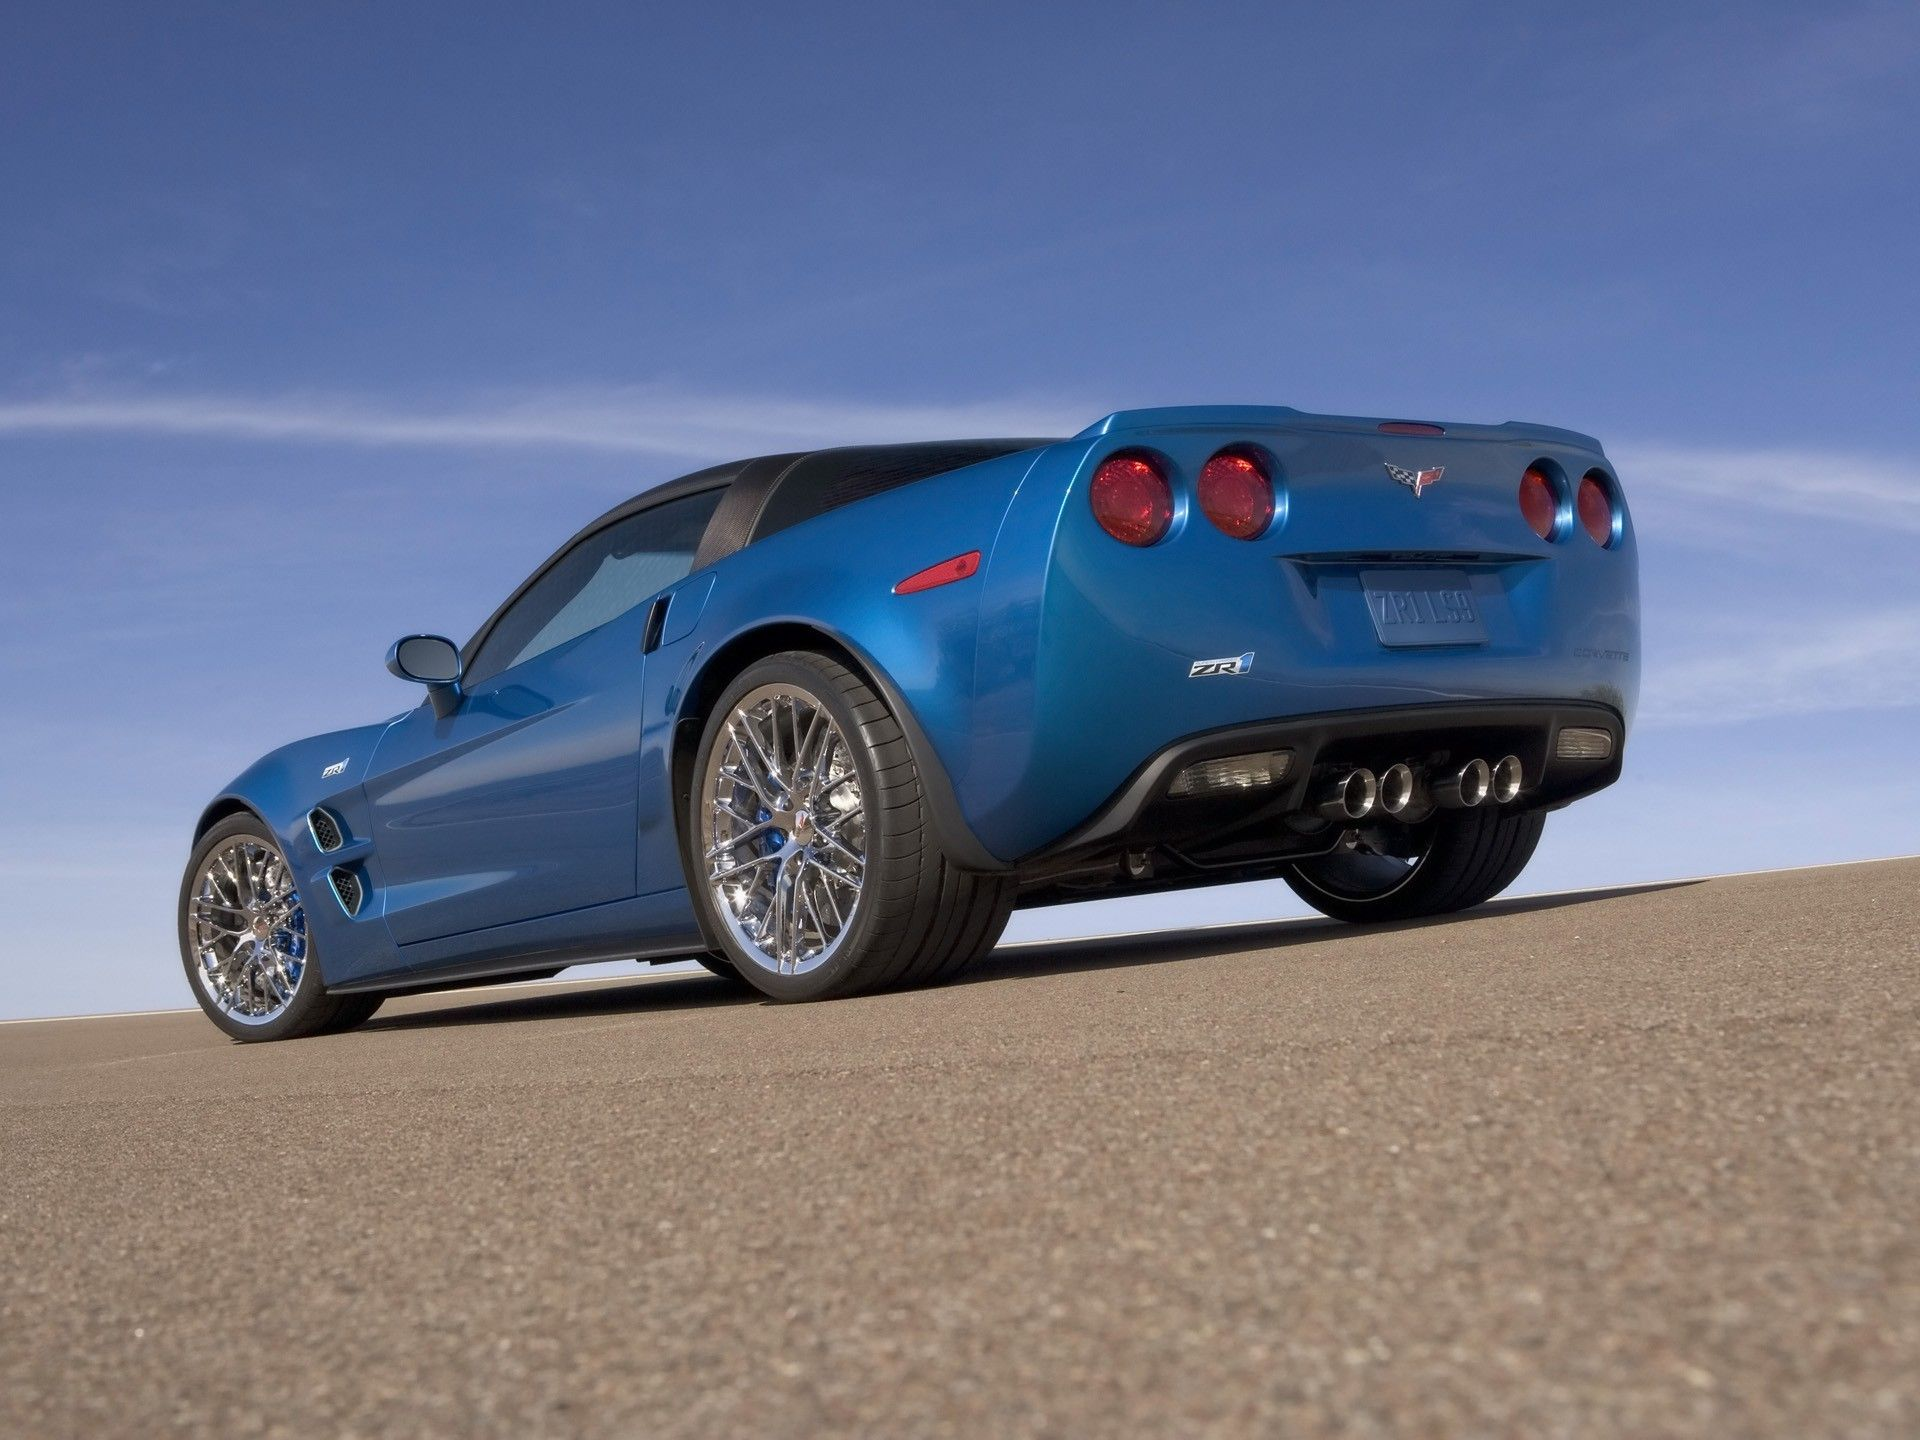 Chevrolet Corvette Zr1 Blue Cars 1920x1440 Corvette Zr1 Blue